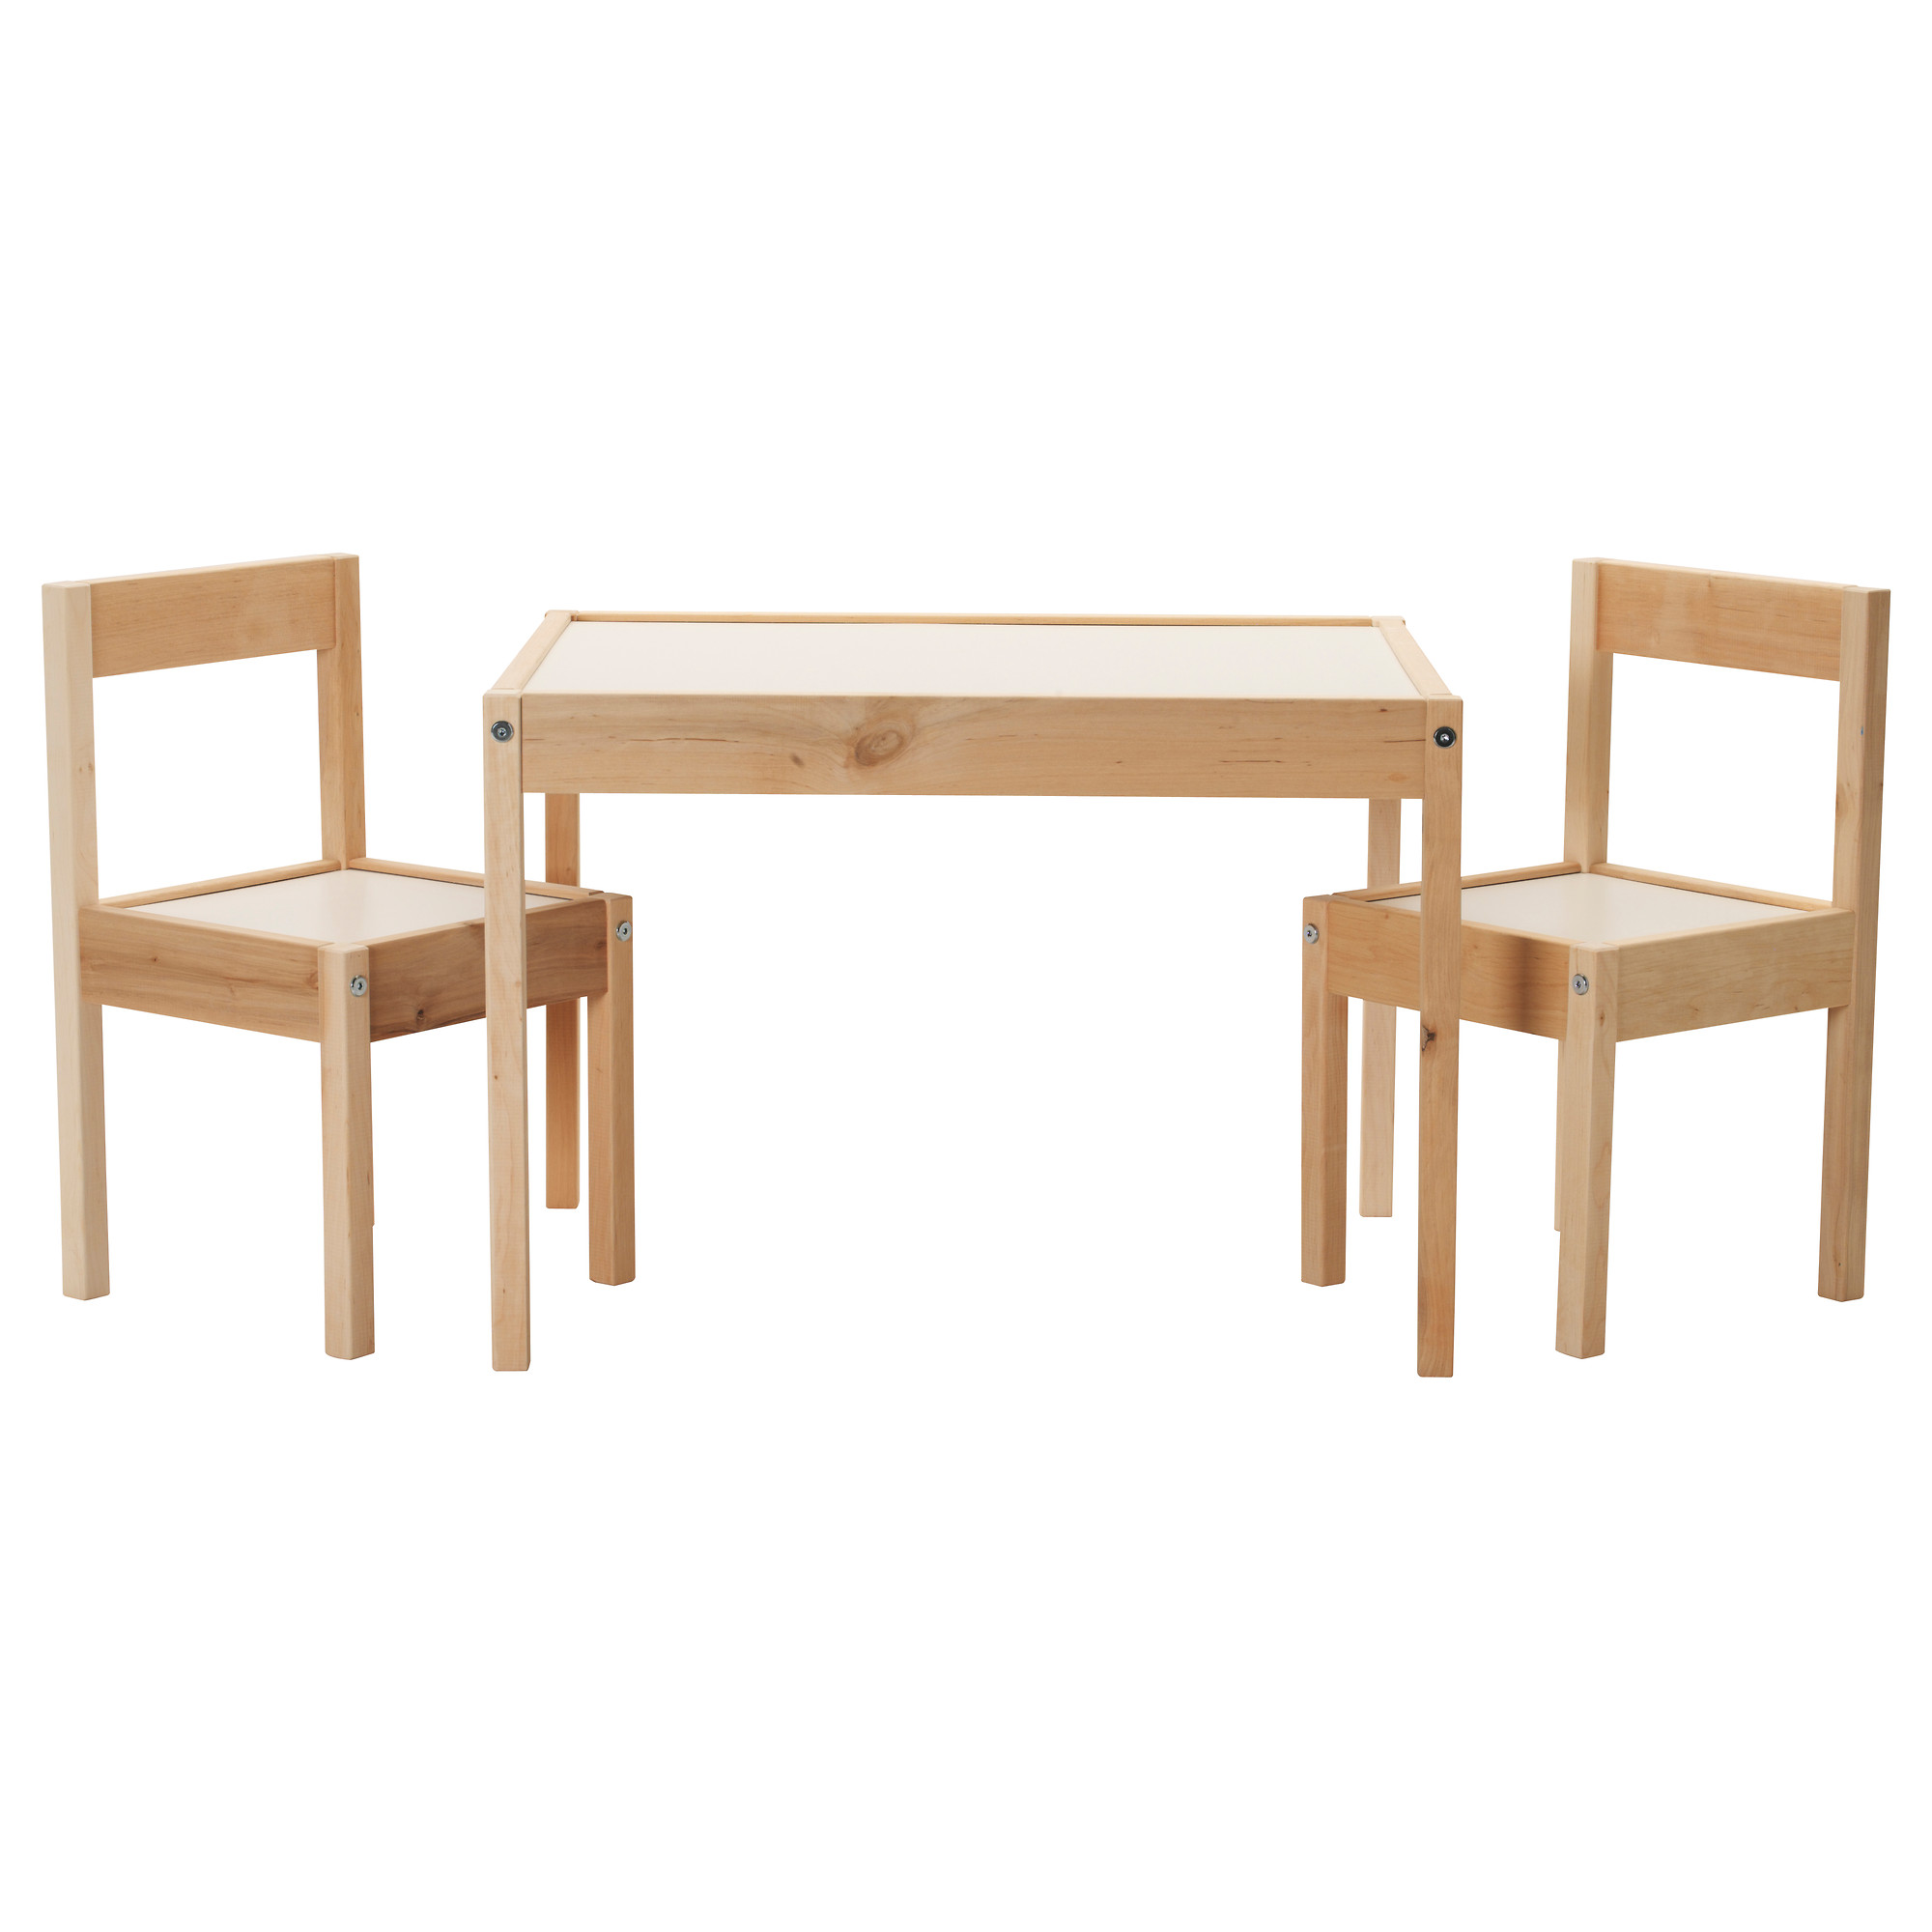 2000x2000 Children's Table And 2 Chairs